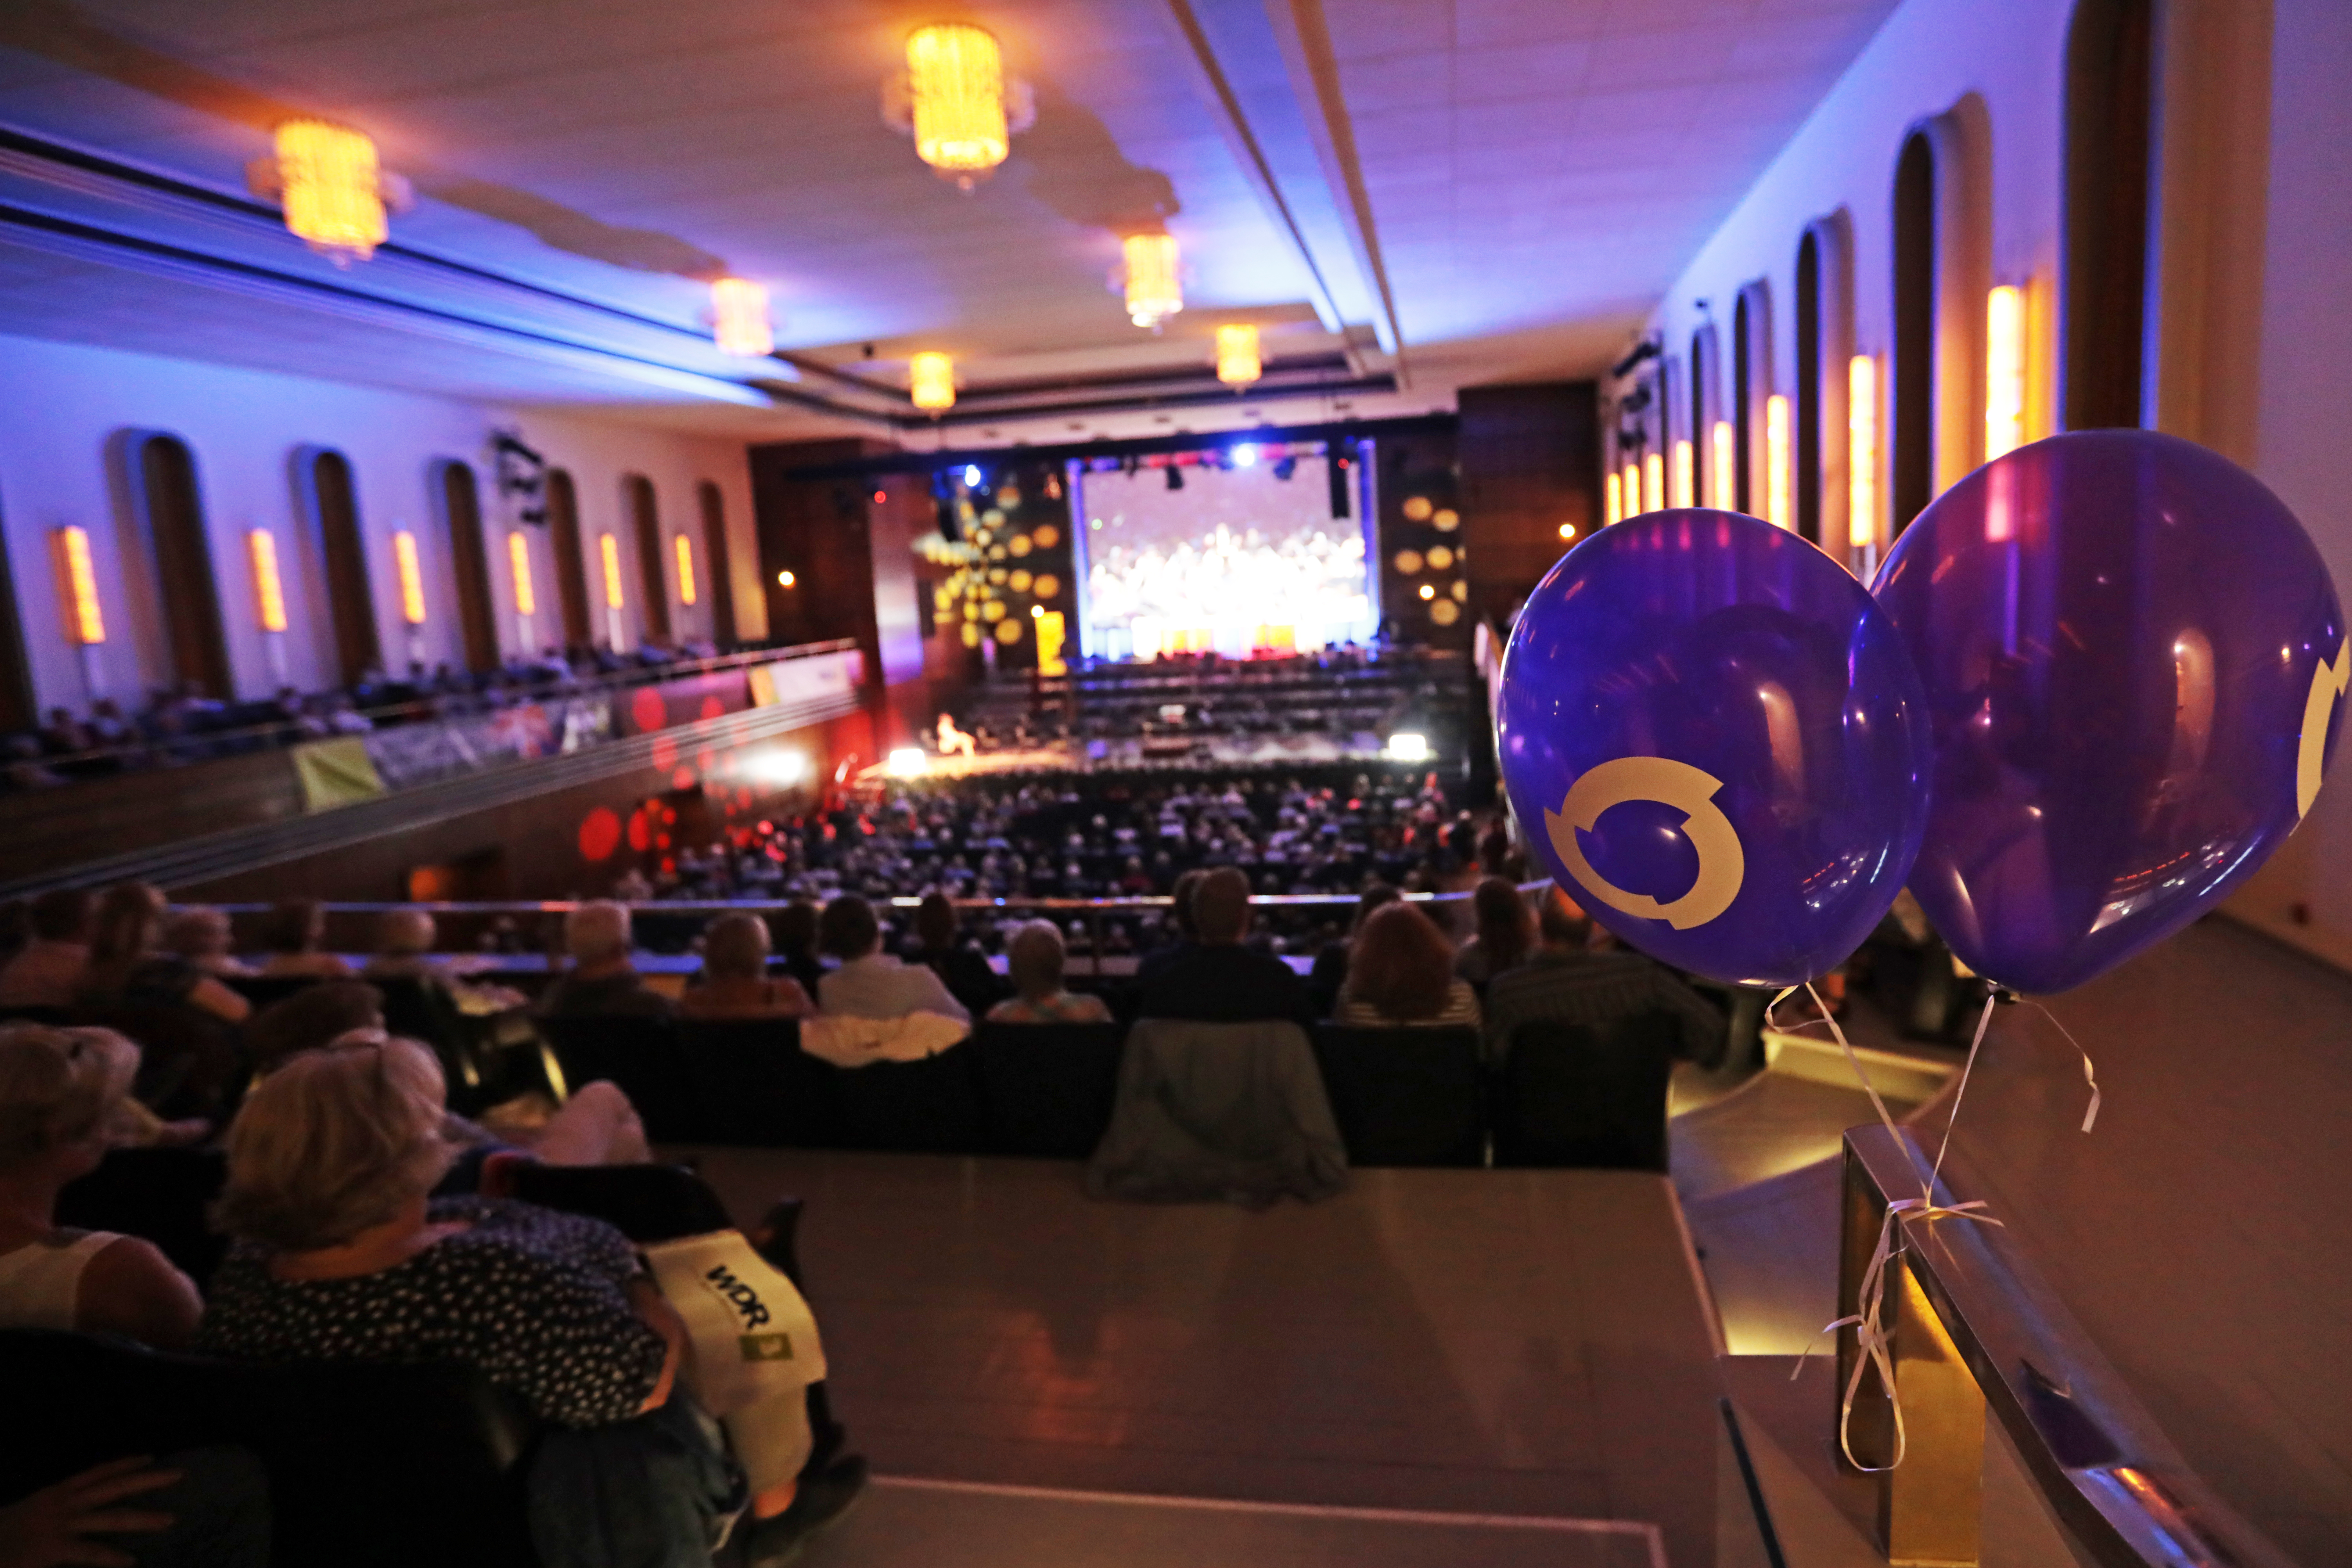 Live-WDR 3-Konzert // Public Viewing der BBC Last Night of the Proms